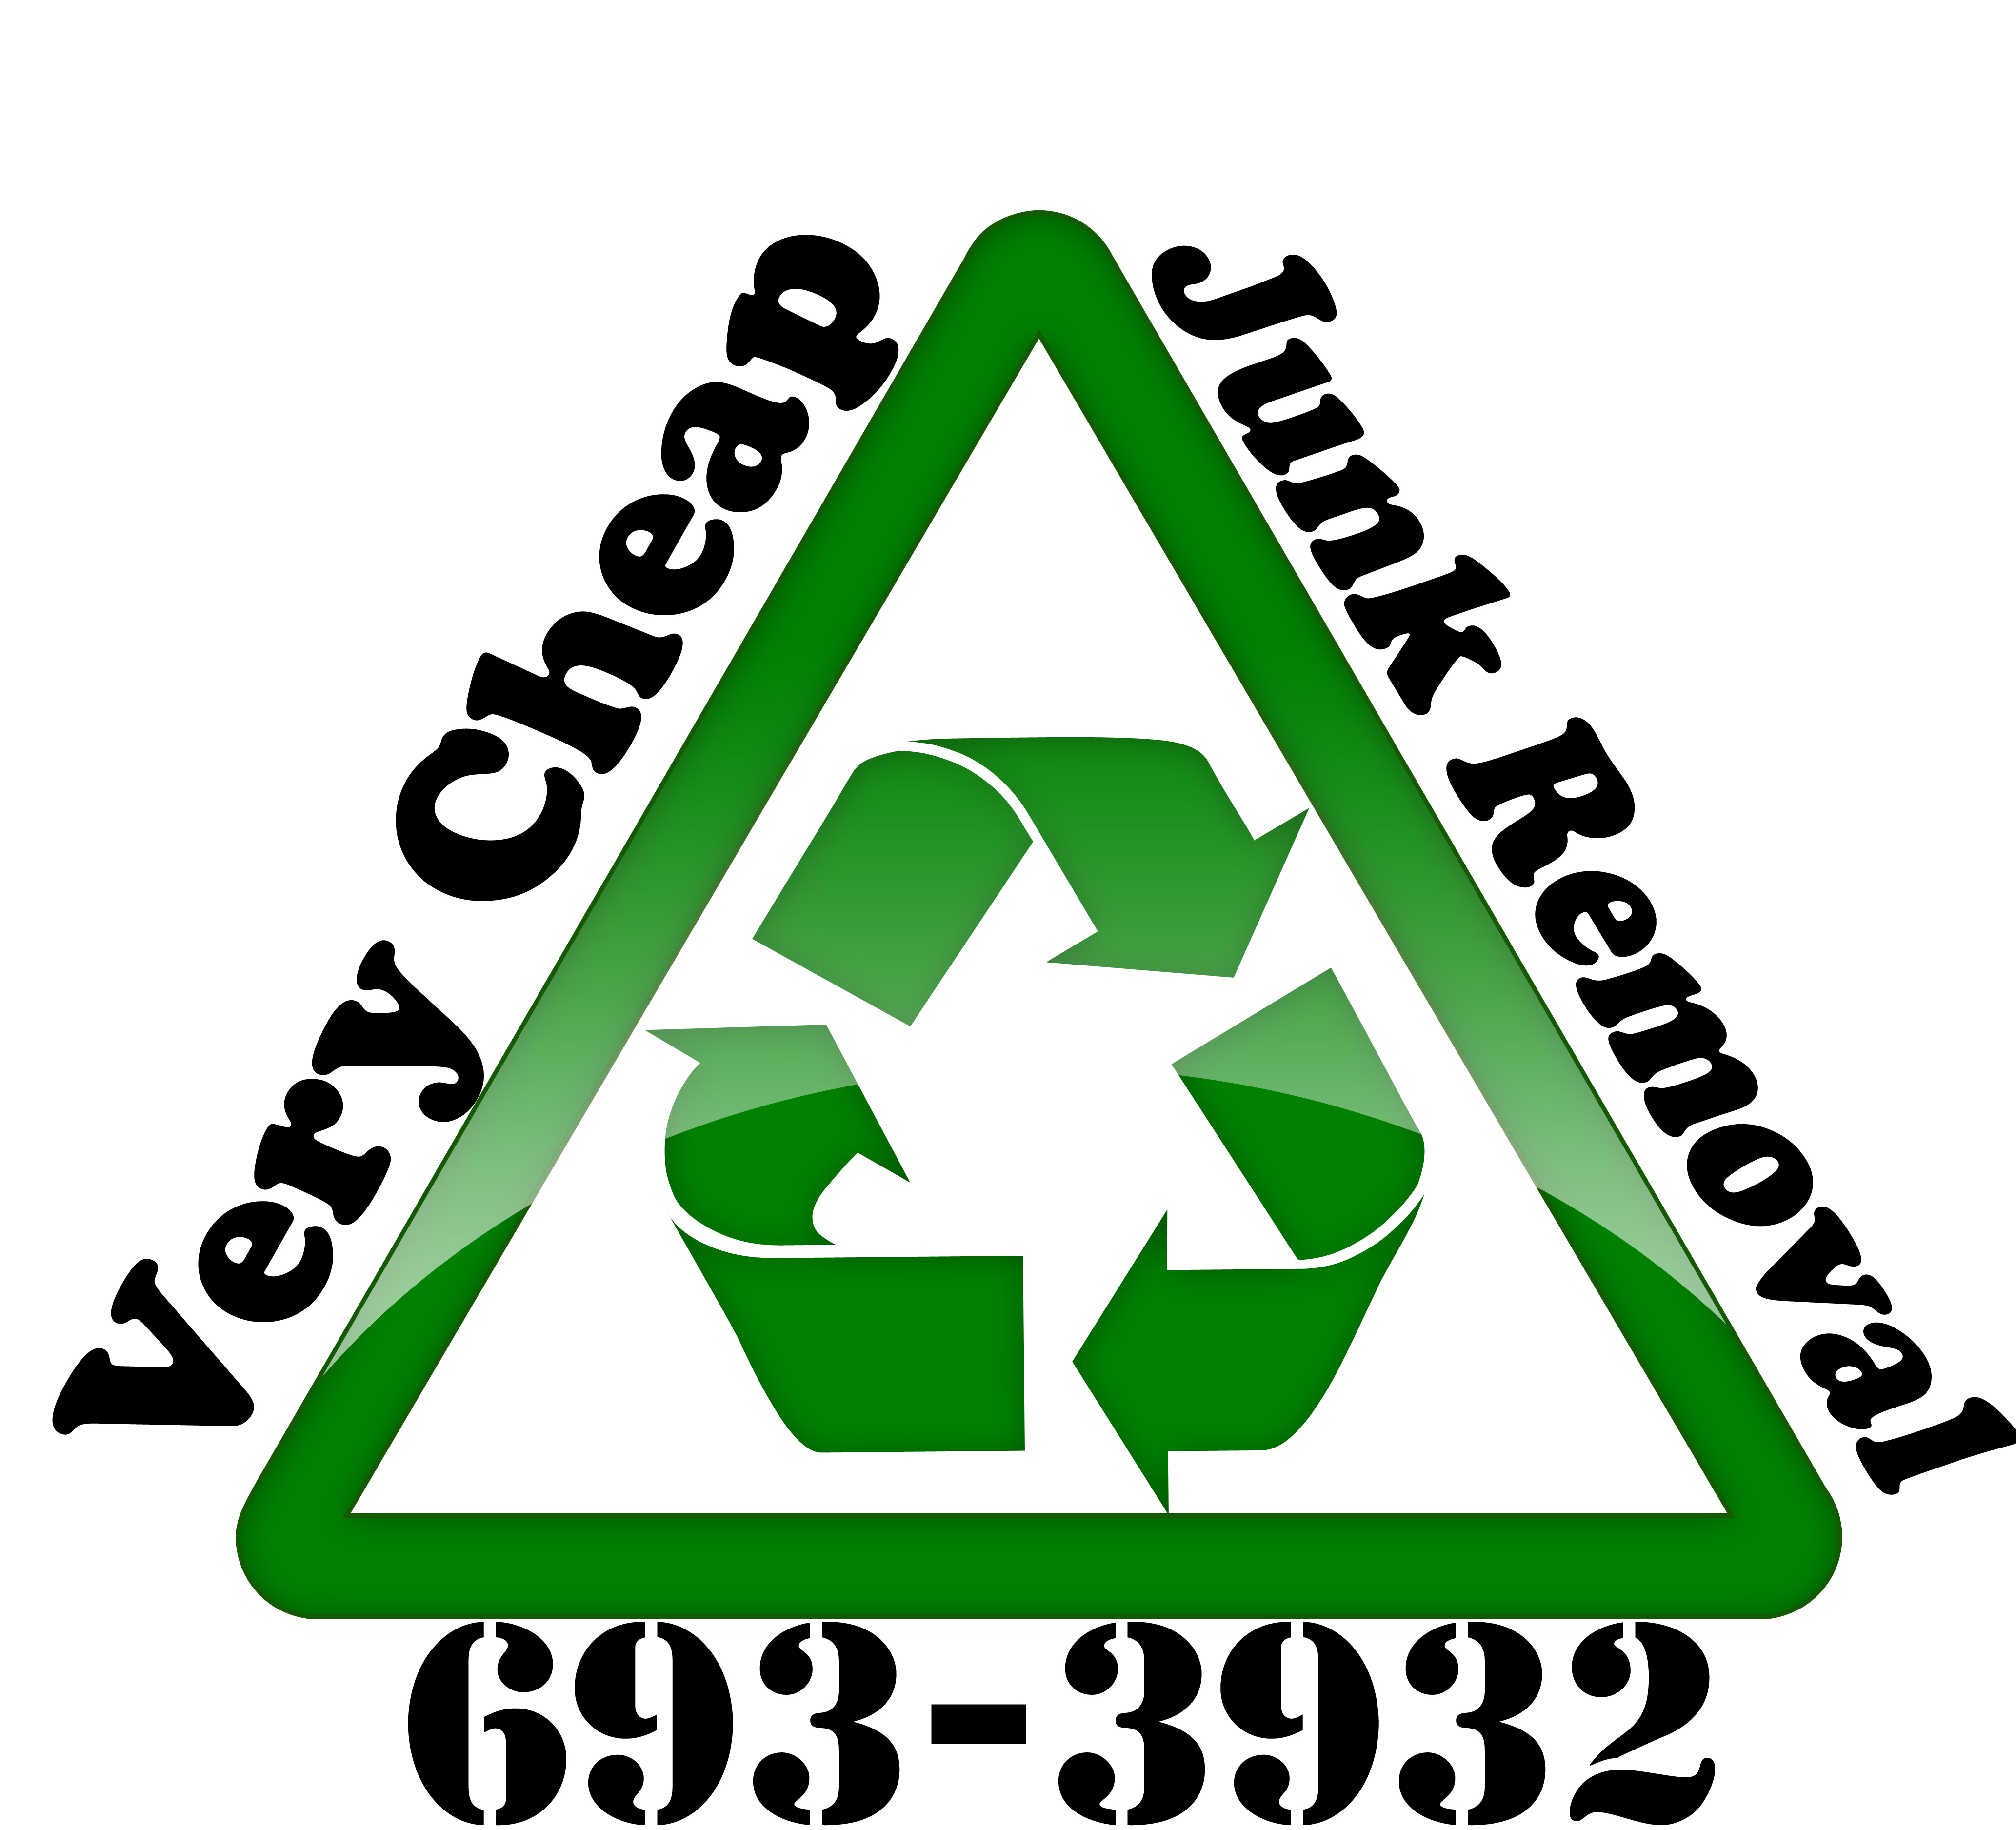 Give Us A Call And See Just How Very Junk Removal Is We Are Sure That Will Make You Smile